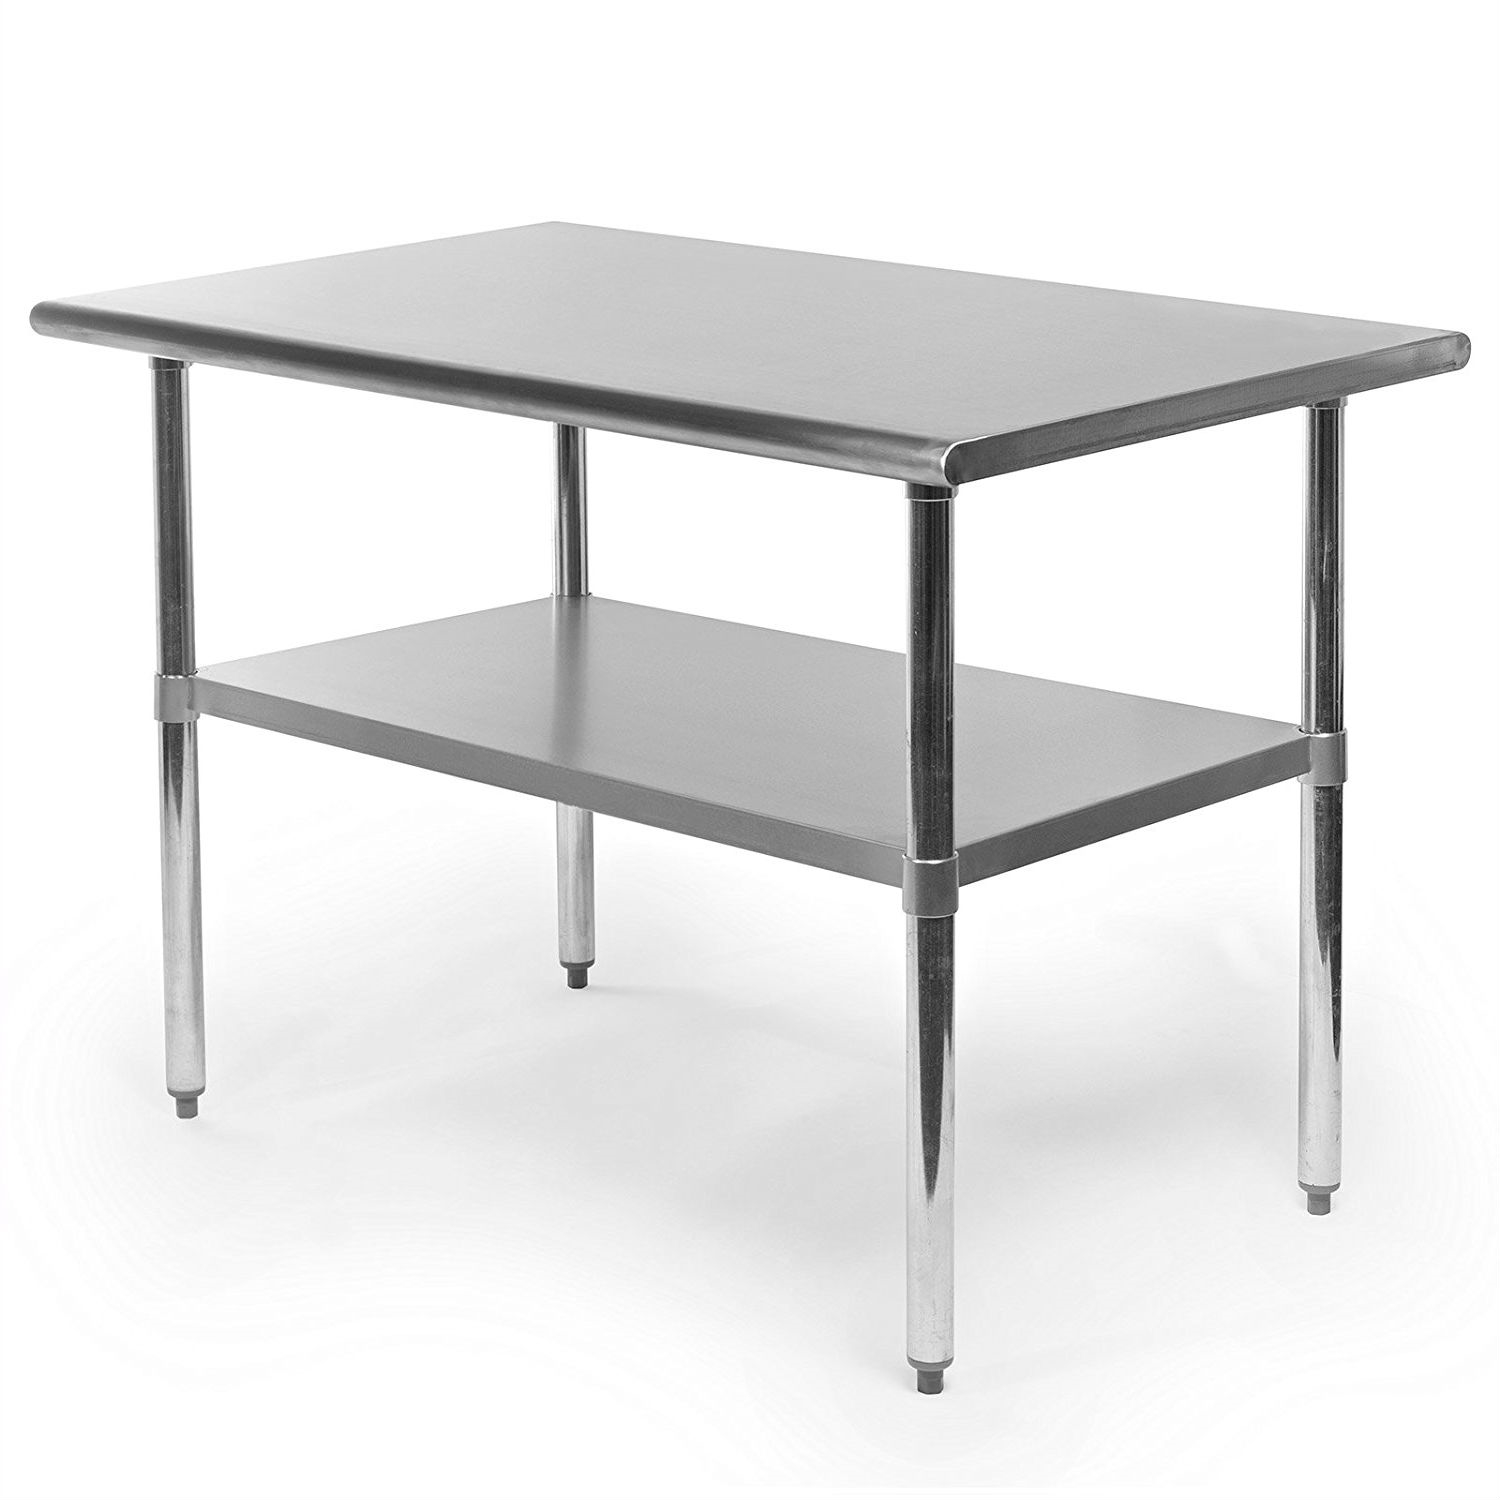 Restaurant Kitchen Work Tables heavy duty stainless steel 48 x 30 inch kitchen restaurant prep